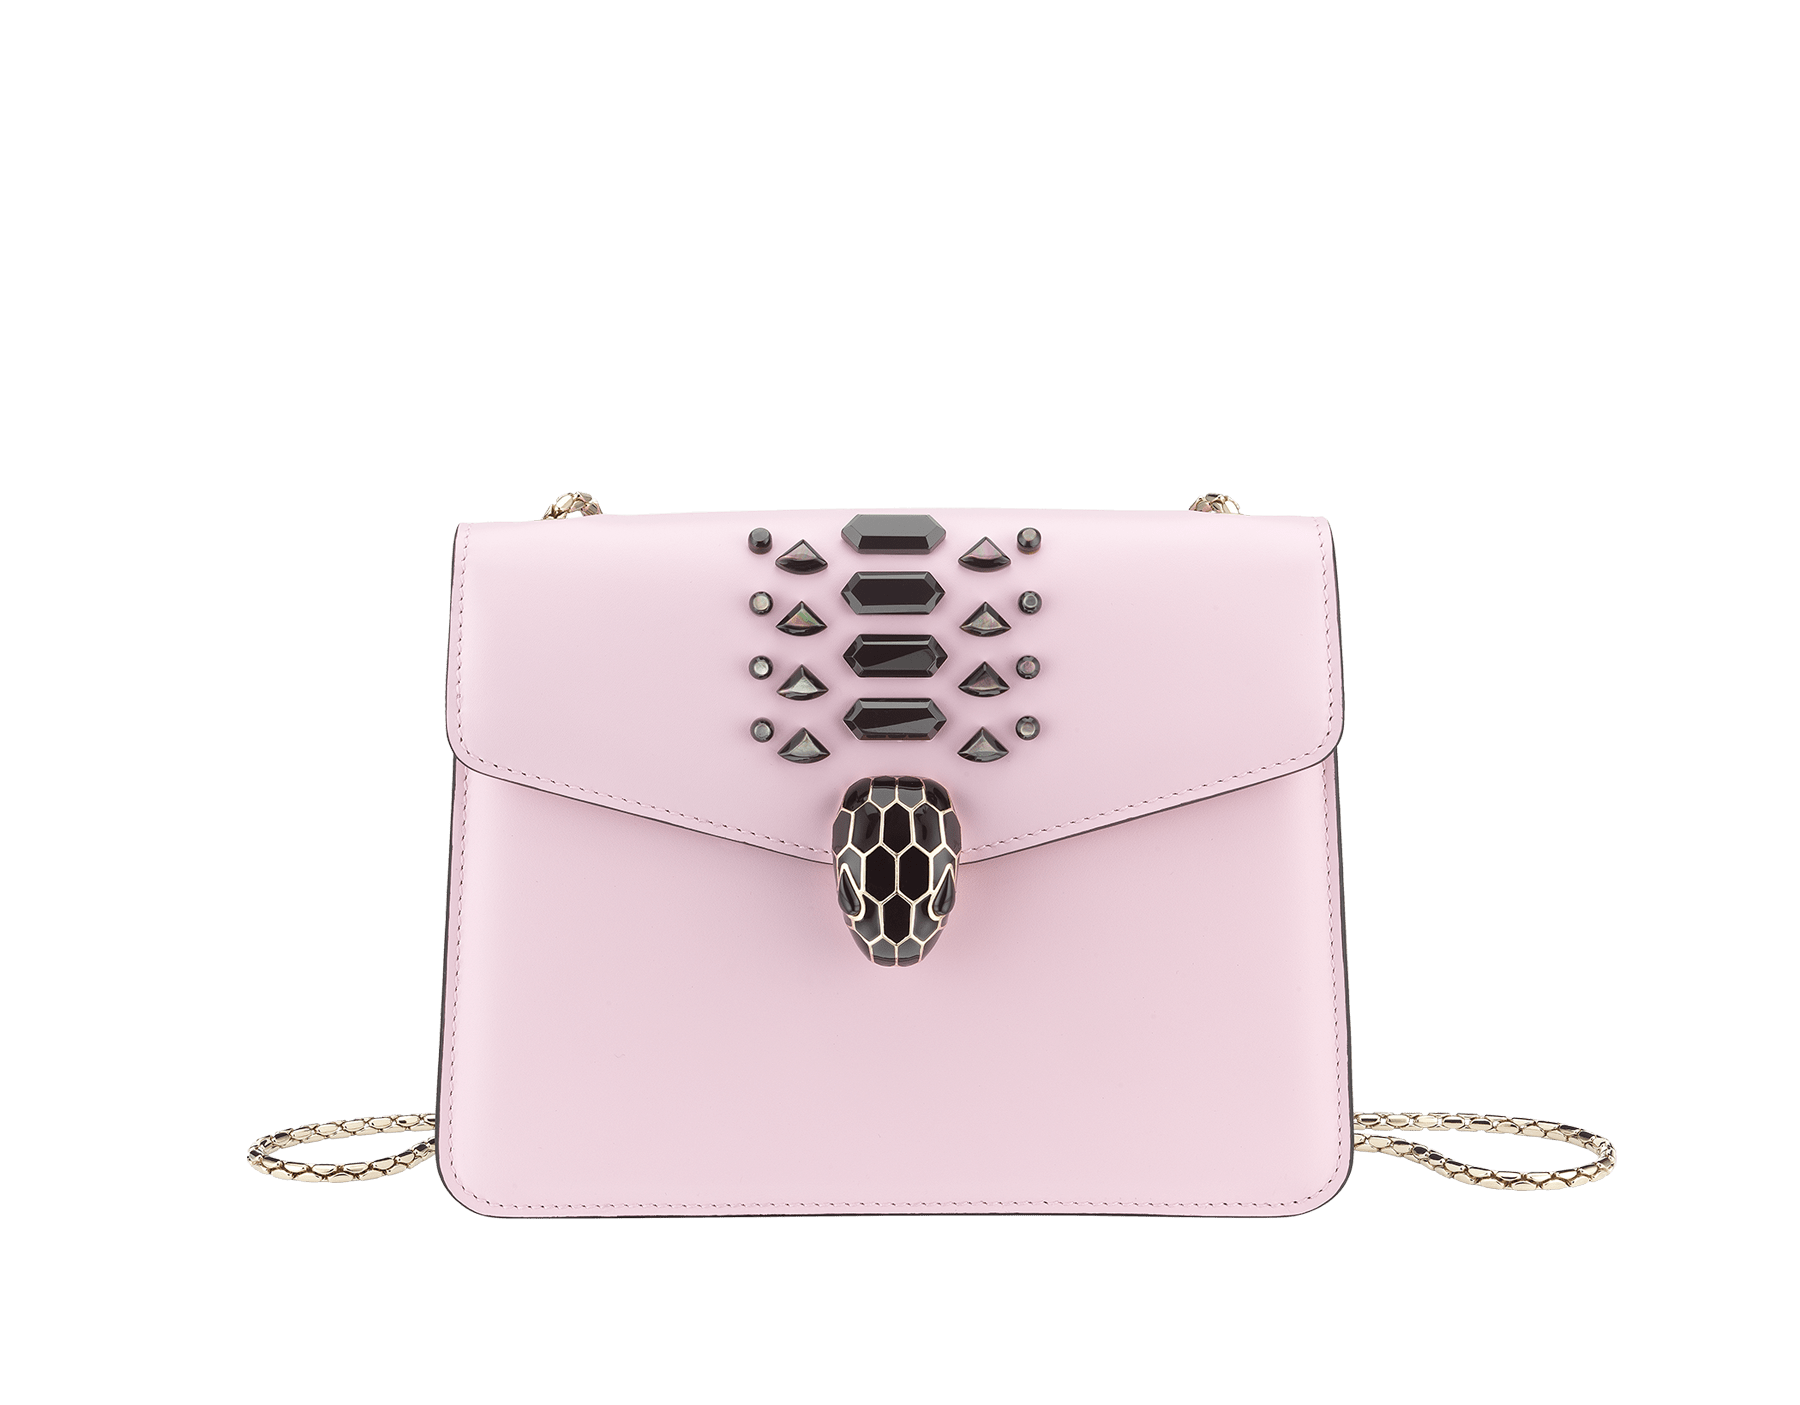 """Serpenti Forever"" crossbody bag in rosa di francia smooth calf leather with onyx scales applied on the flap. Iconic snake head closure in light gold plated brass enriched with black enamel and black onyx eyes. 422-GEM image 1"